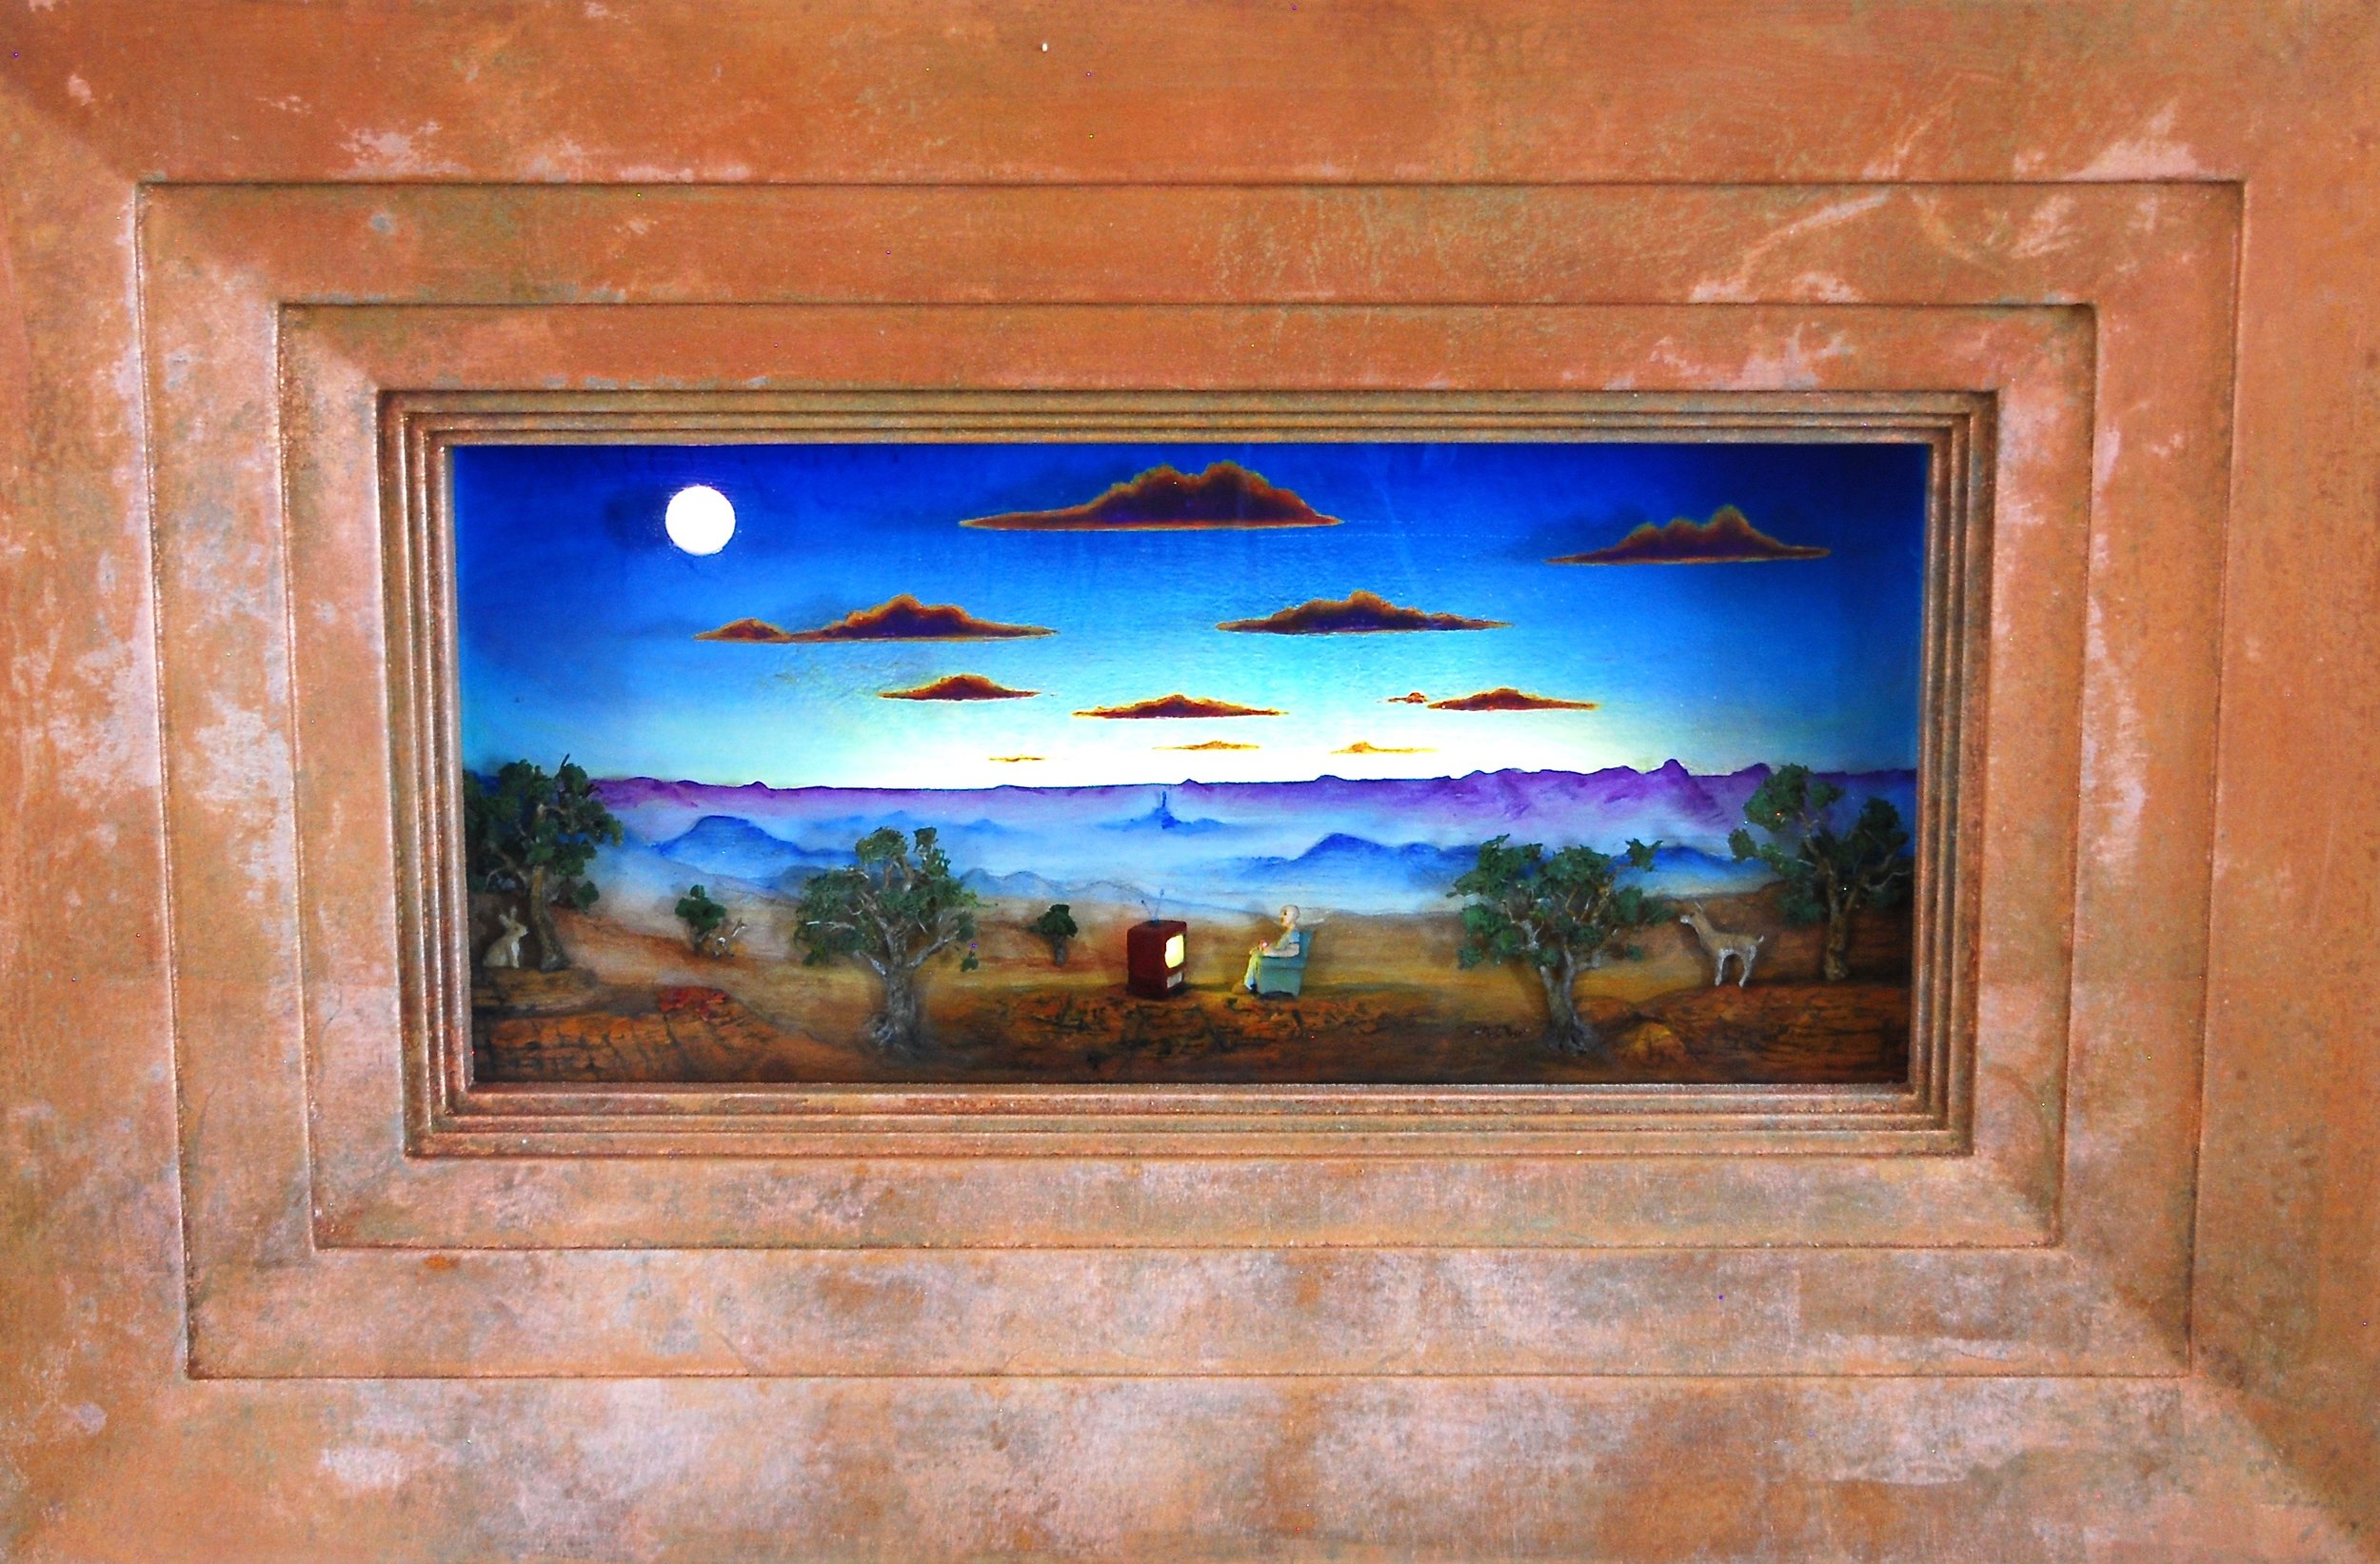 """Thomas Coffin - Lots Of Good Shows Tonight, 15""""h x 22""""w x 4 1/2""""d, mixed media 3-d diorama encased in acrylic resin, handmade wood frame, copper leaf"""